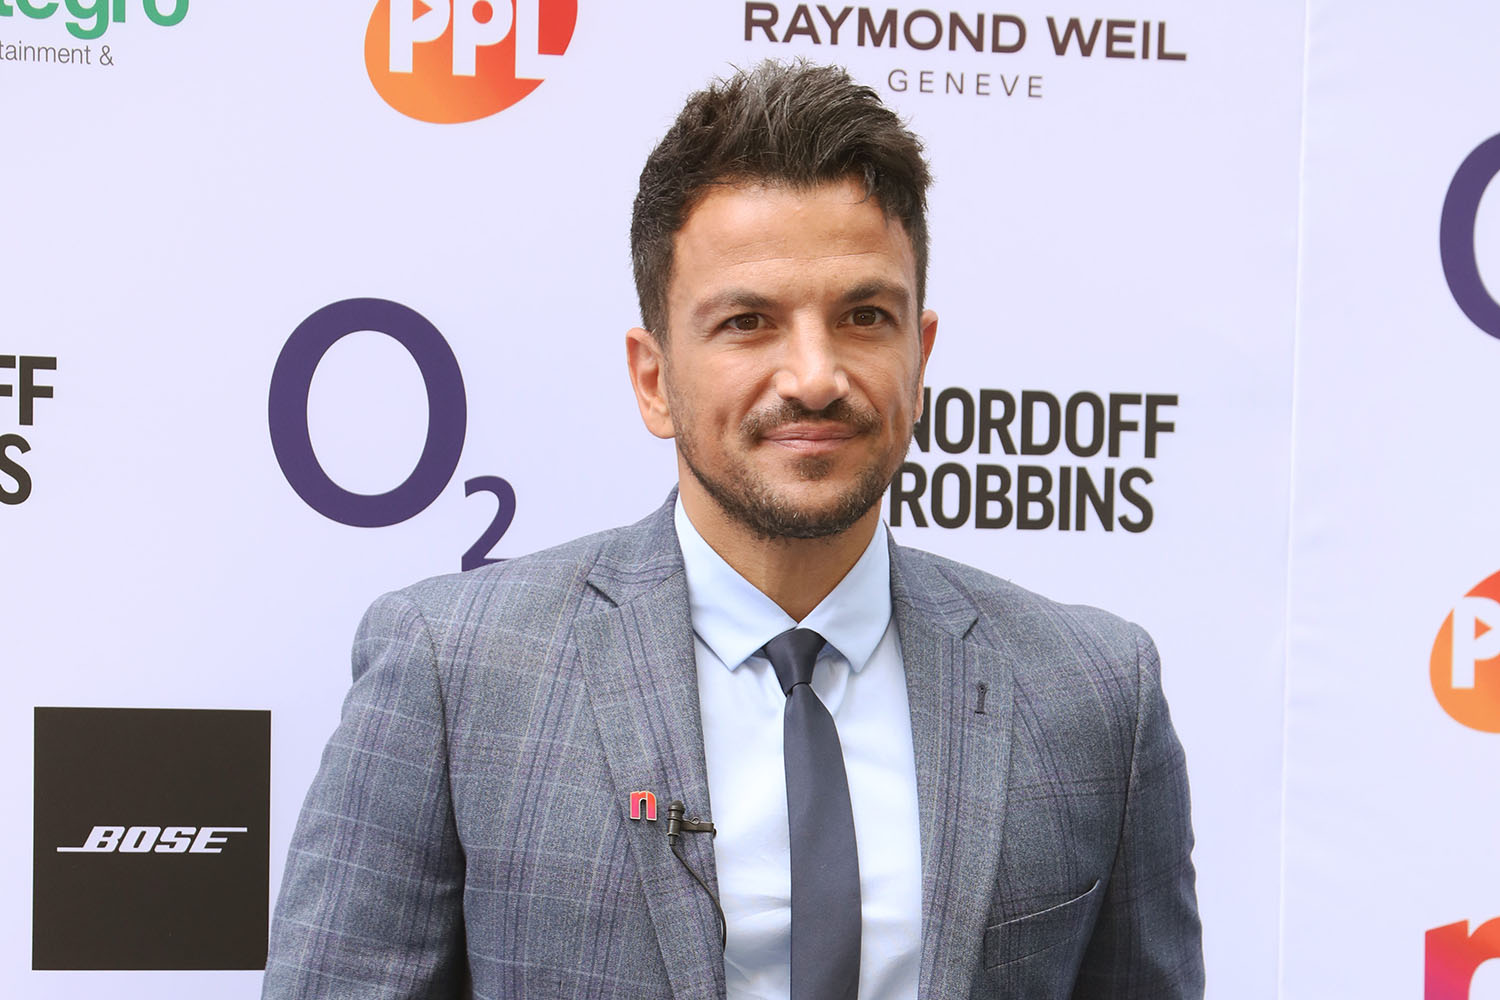 Peter Andre teases that there's 'something very exciting' coming next Wednesday